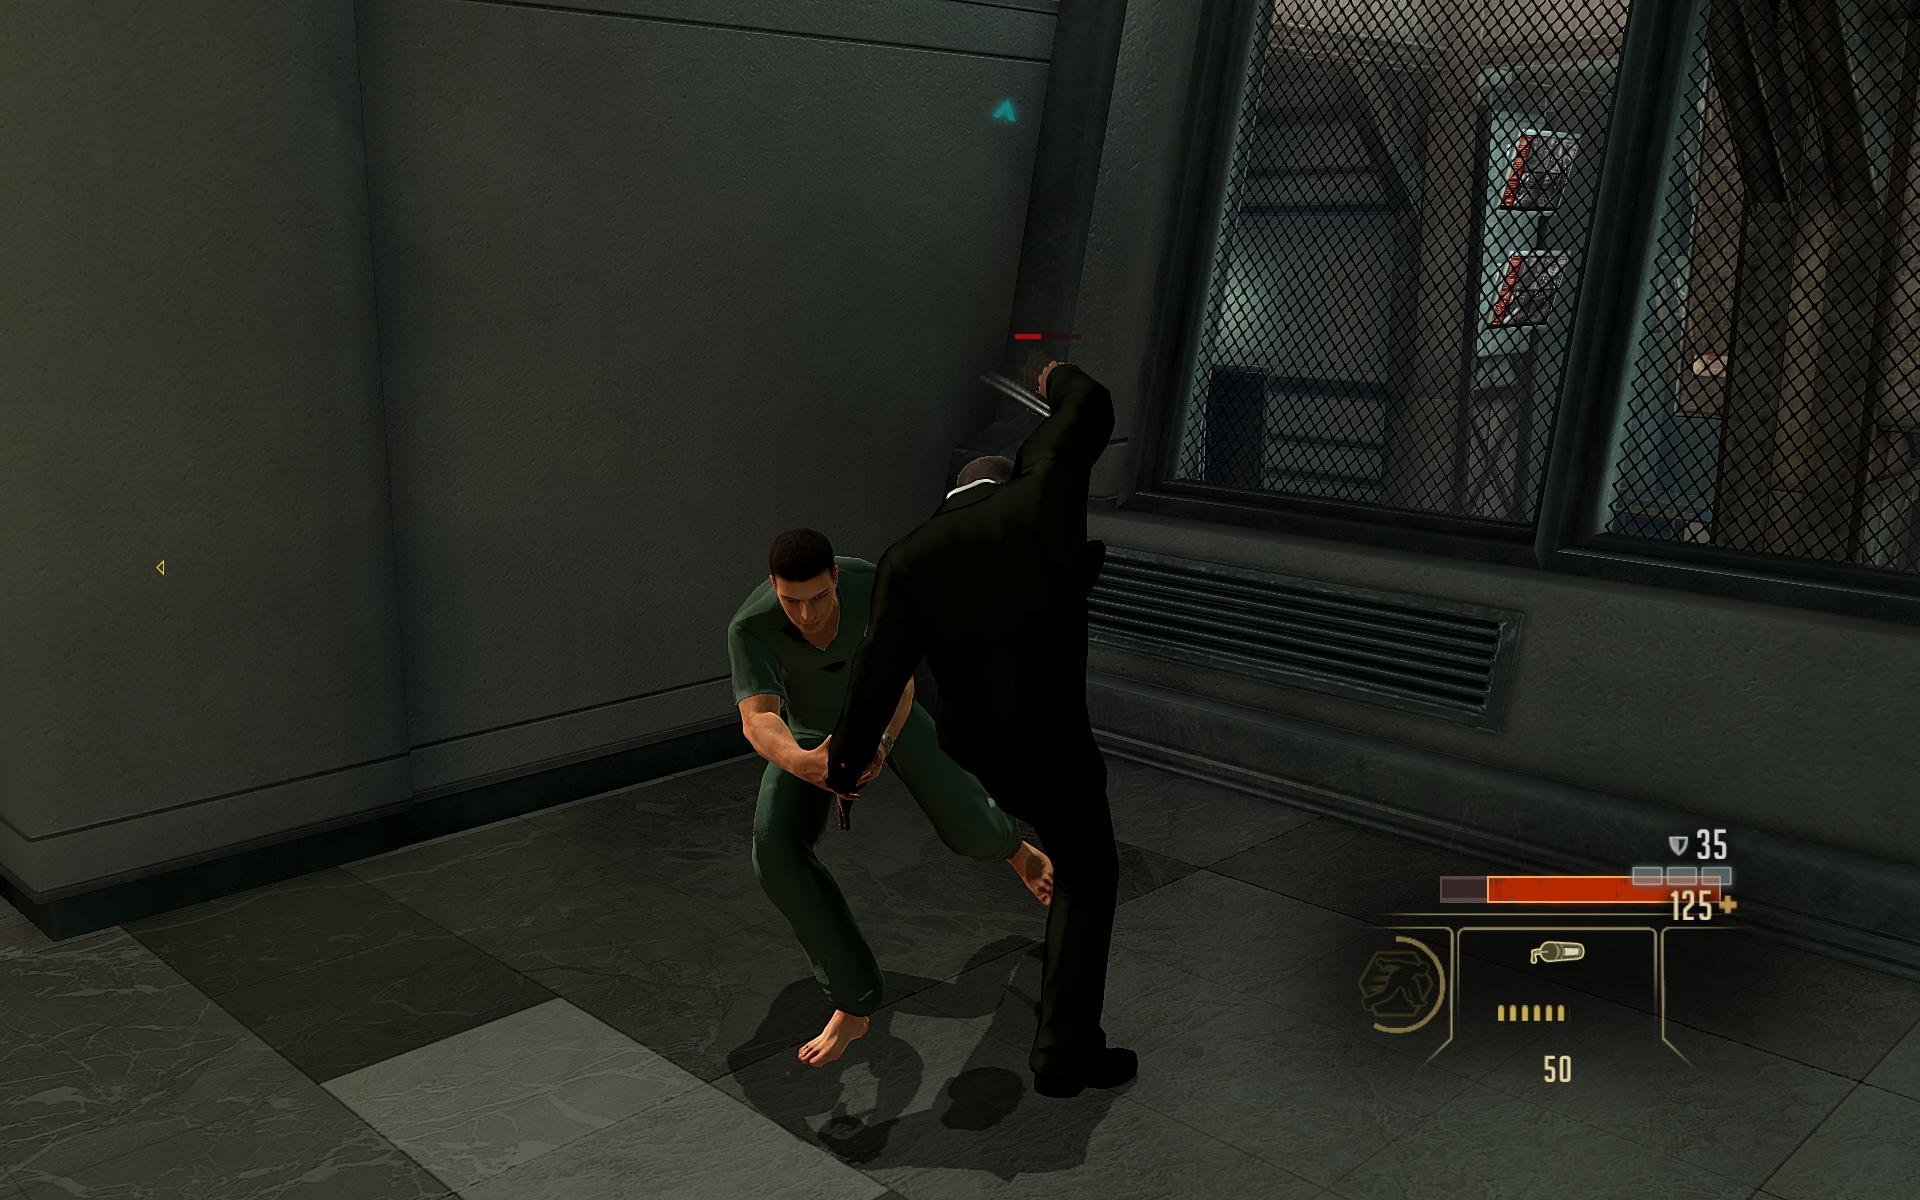 Alpha Protocol Sneak Take Down